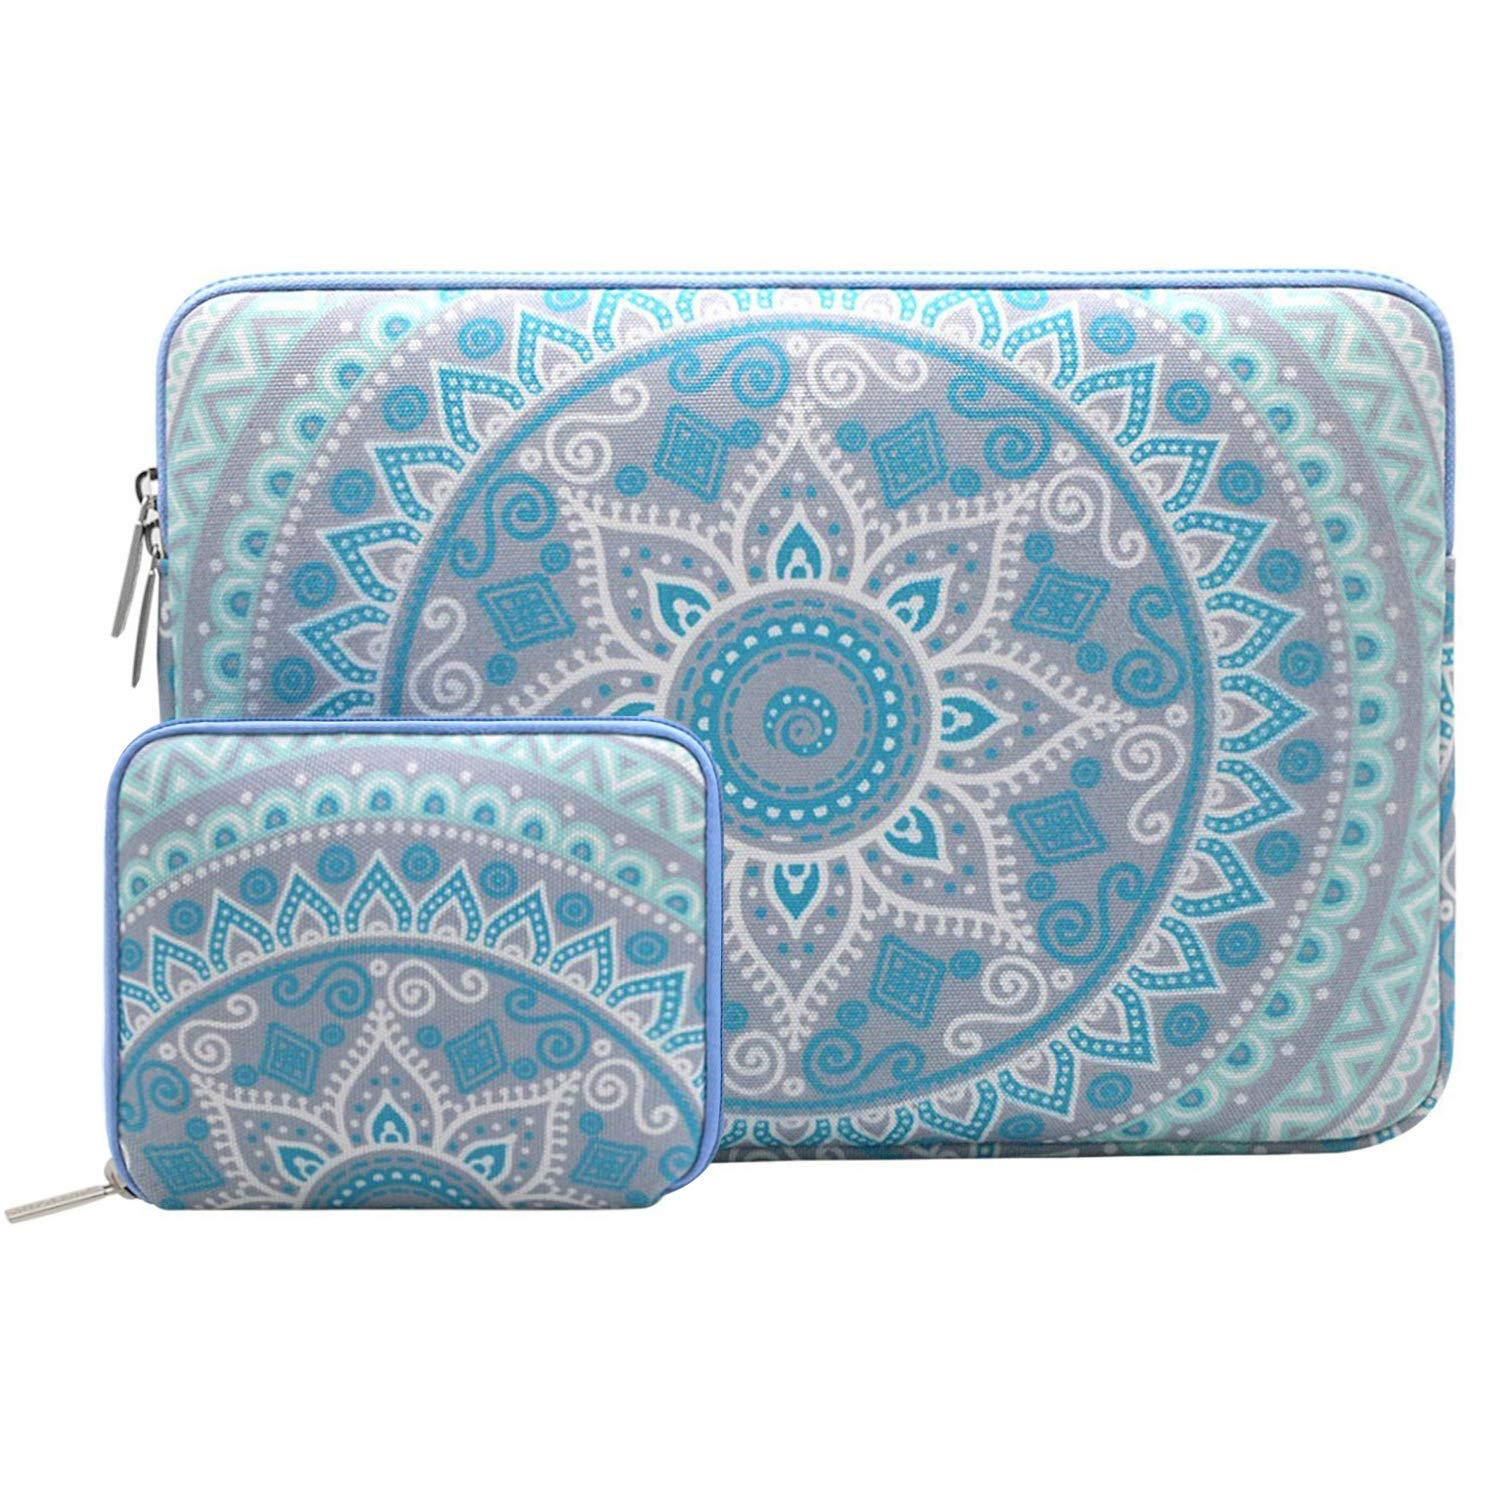 MOSISO Laptop Sleeve Compatible 12.3 inch Microsoft Surface Pro 6/5/4/3, 11-11.6 Inch MacBook Air, Ultrabook Tablet with Small Case, Canvas Mandala Pattern Carrying Bag Cover, Mint Green and Blue by MOSISO